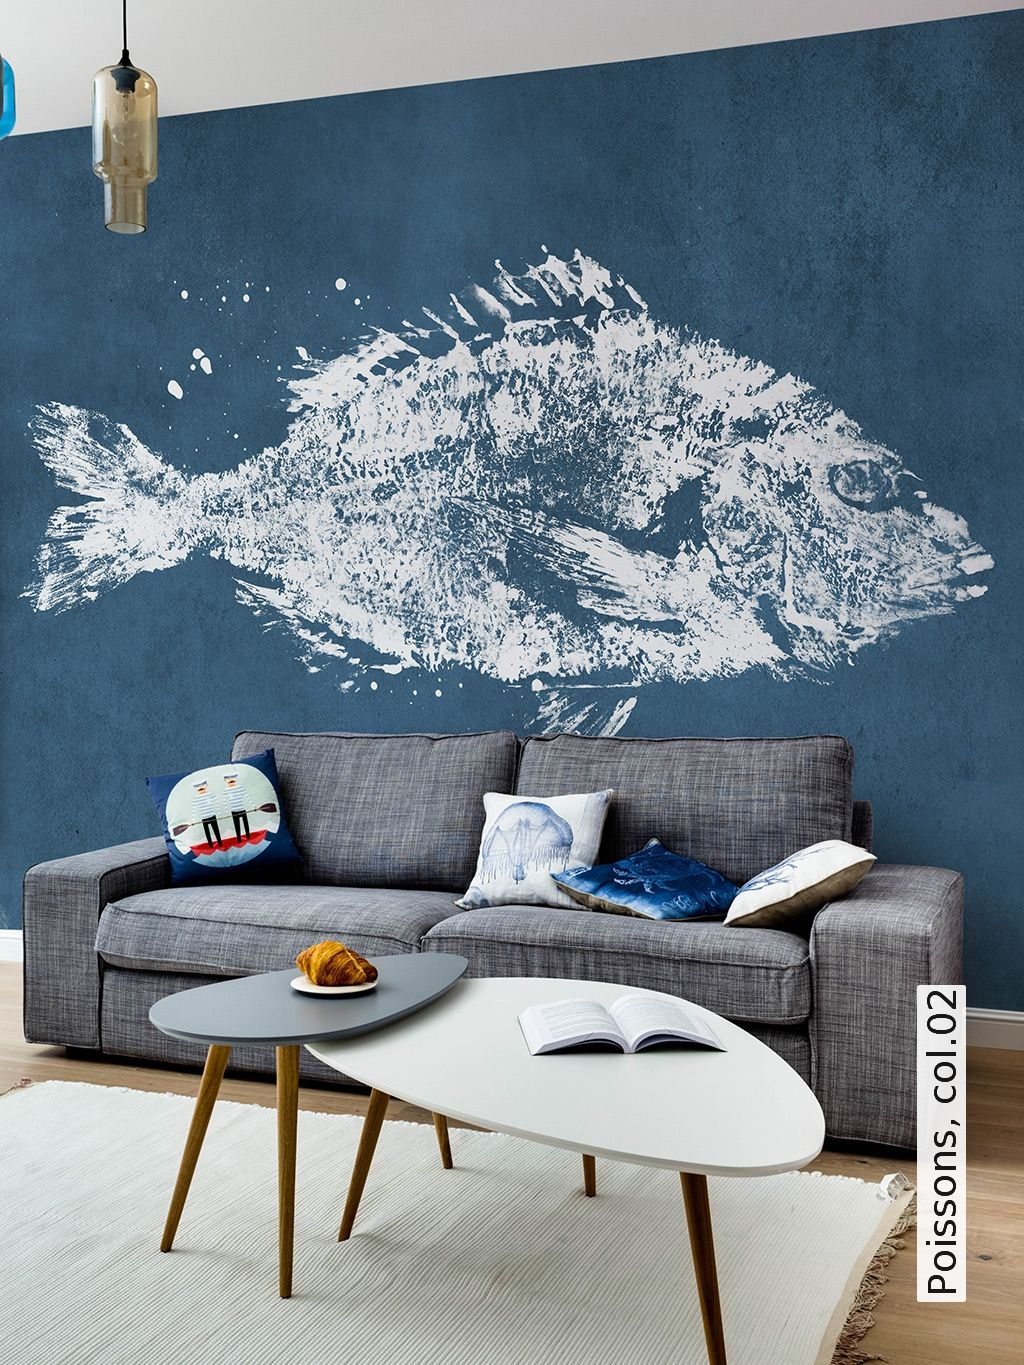 Maritime Tapeten Schlafzimmer Poissons Col 02 Wohnen Wall Prints Home Decor Und Wallpaper